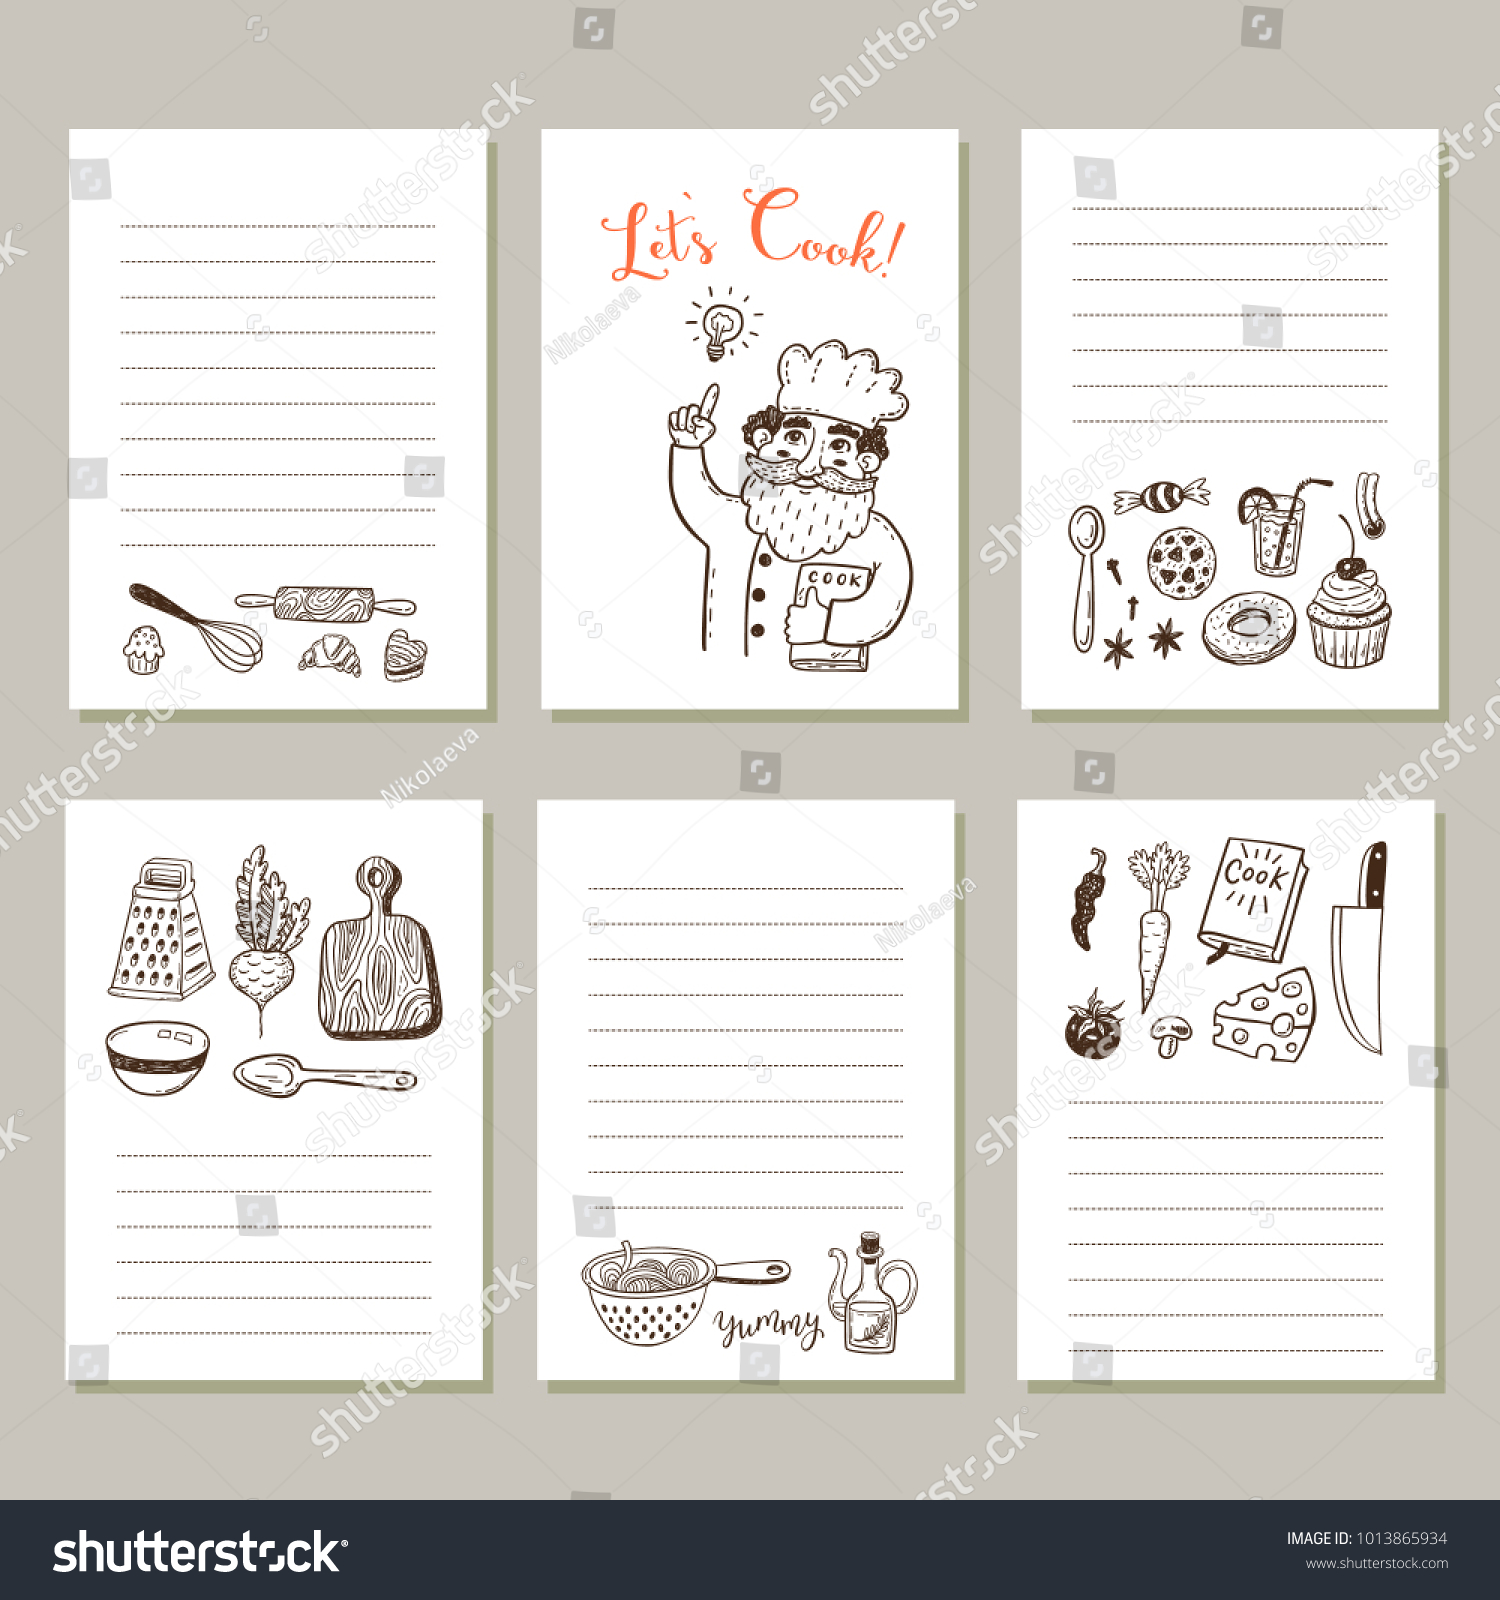 Page template set notes cooking recipe vector de stock1013865934 page template set notes cooking recipe vector de stock1013865934 shutterstock forumfinder Gallery